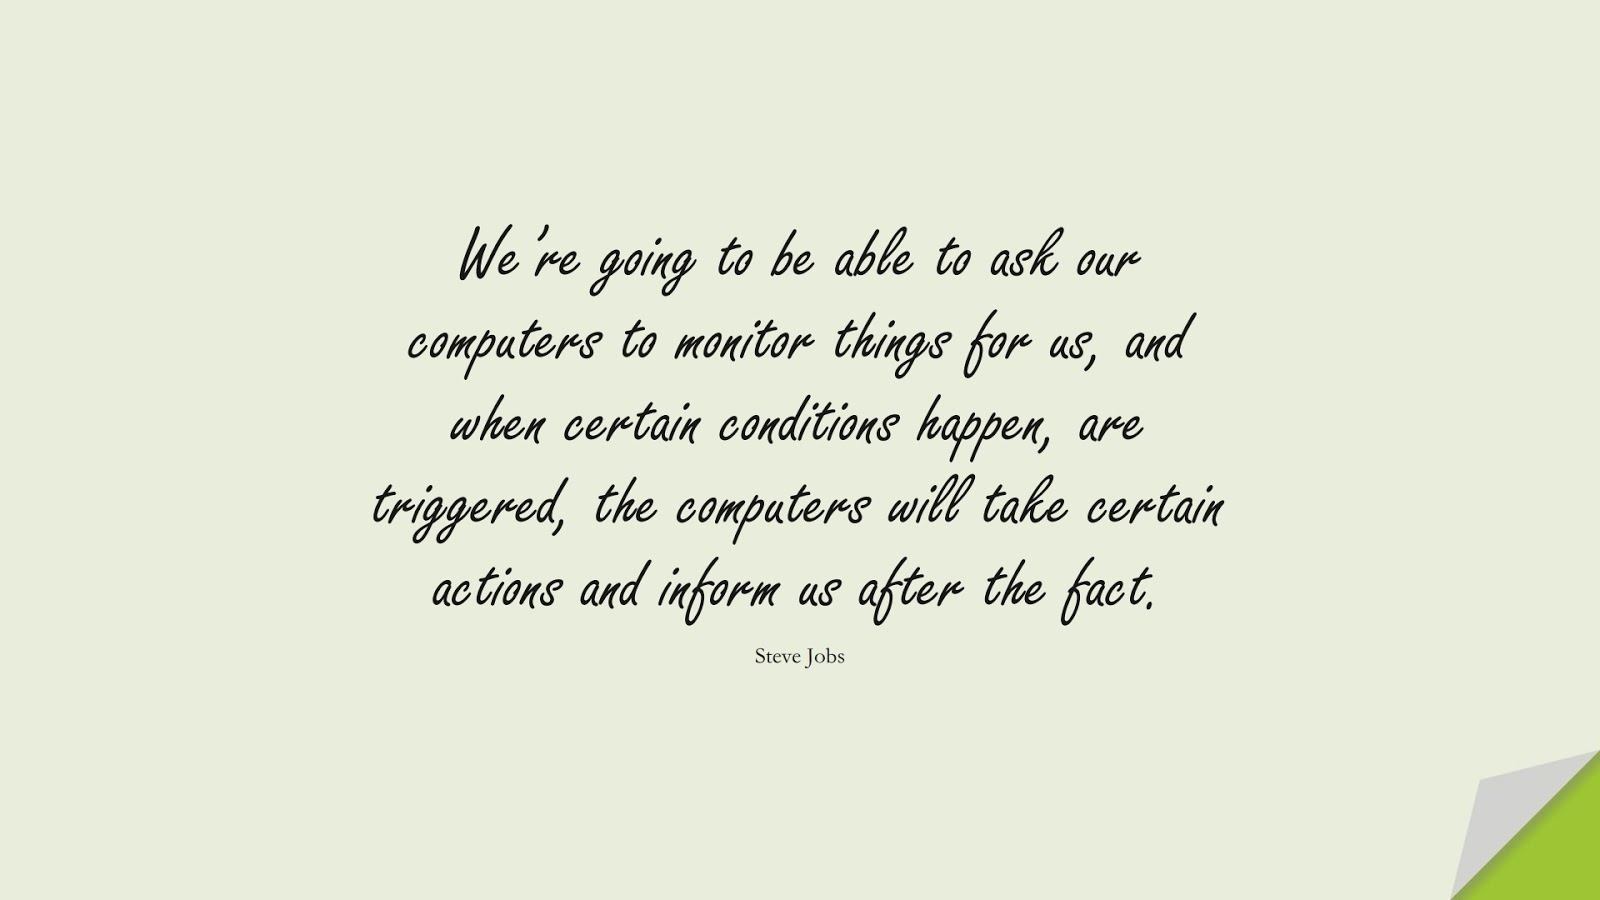 We're going to be able to ask our computers to monitor things for us, and when certain conditions happen, are triggered, the computers will take certain actions and inform us after the fact. (Steve Jobs);  #SteveJobsQuotes